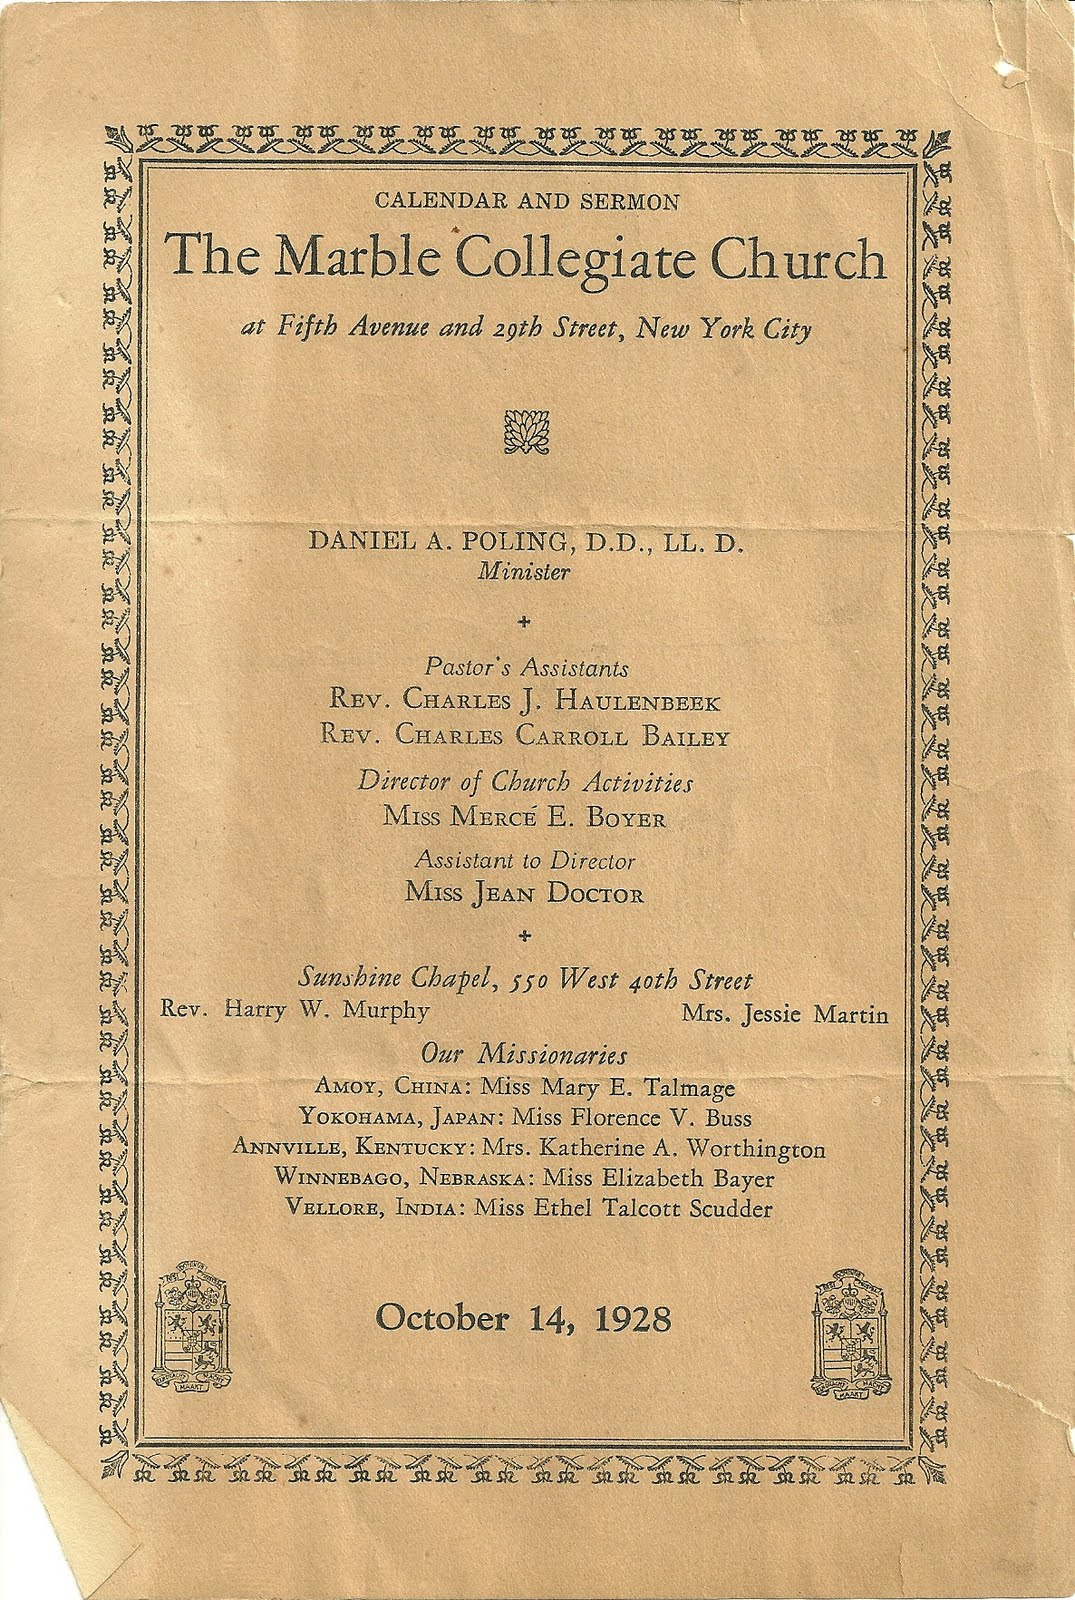 Heirlooms Reunited Oct 1928 Program Of The Marble Collegiate Church Raisa Font College Navy M 5th Ave 29th St New York City